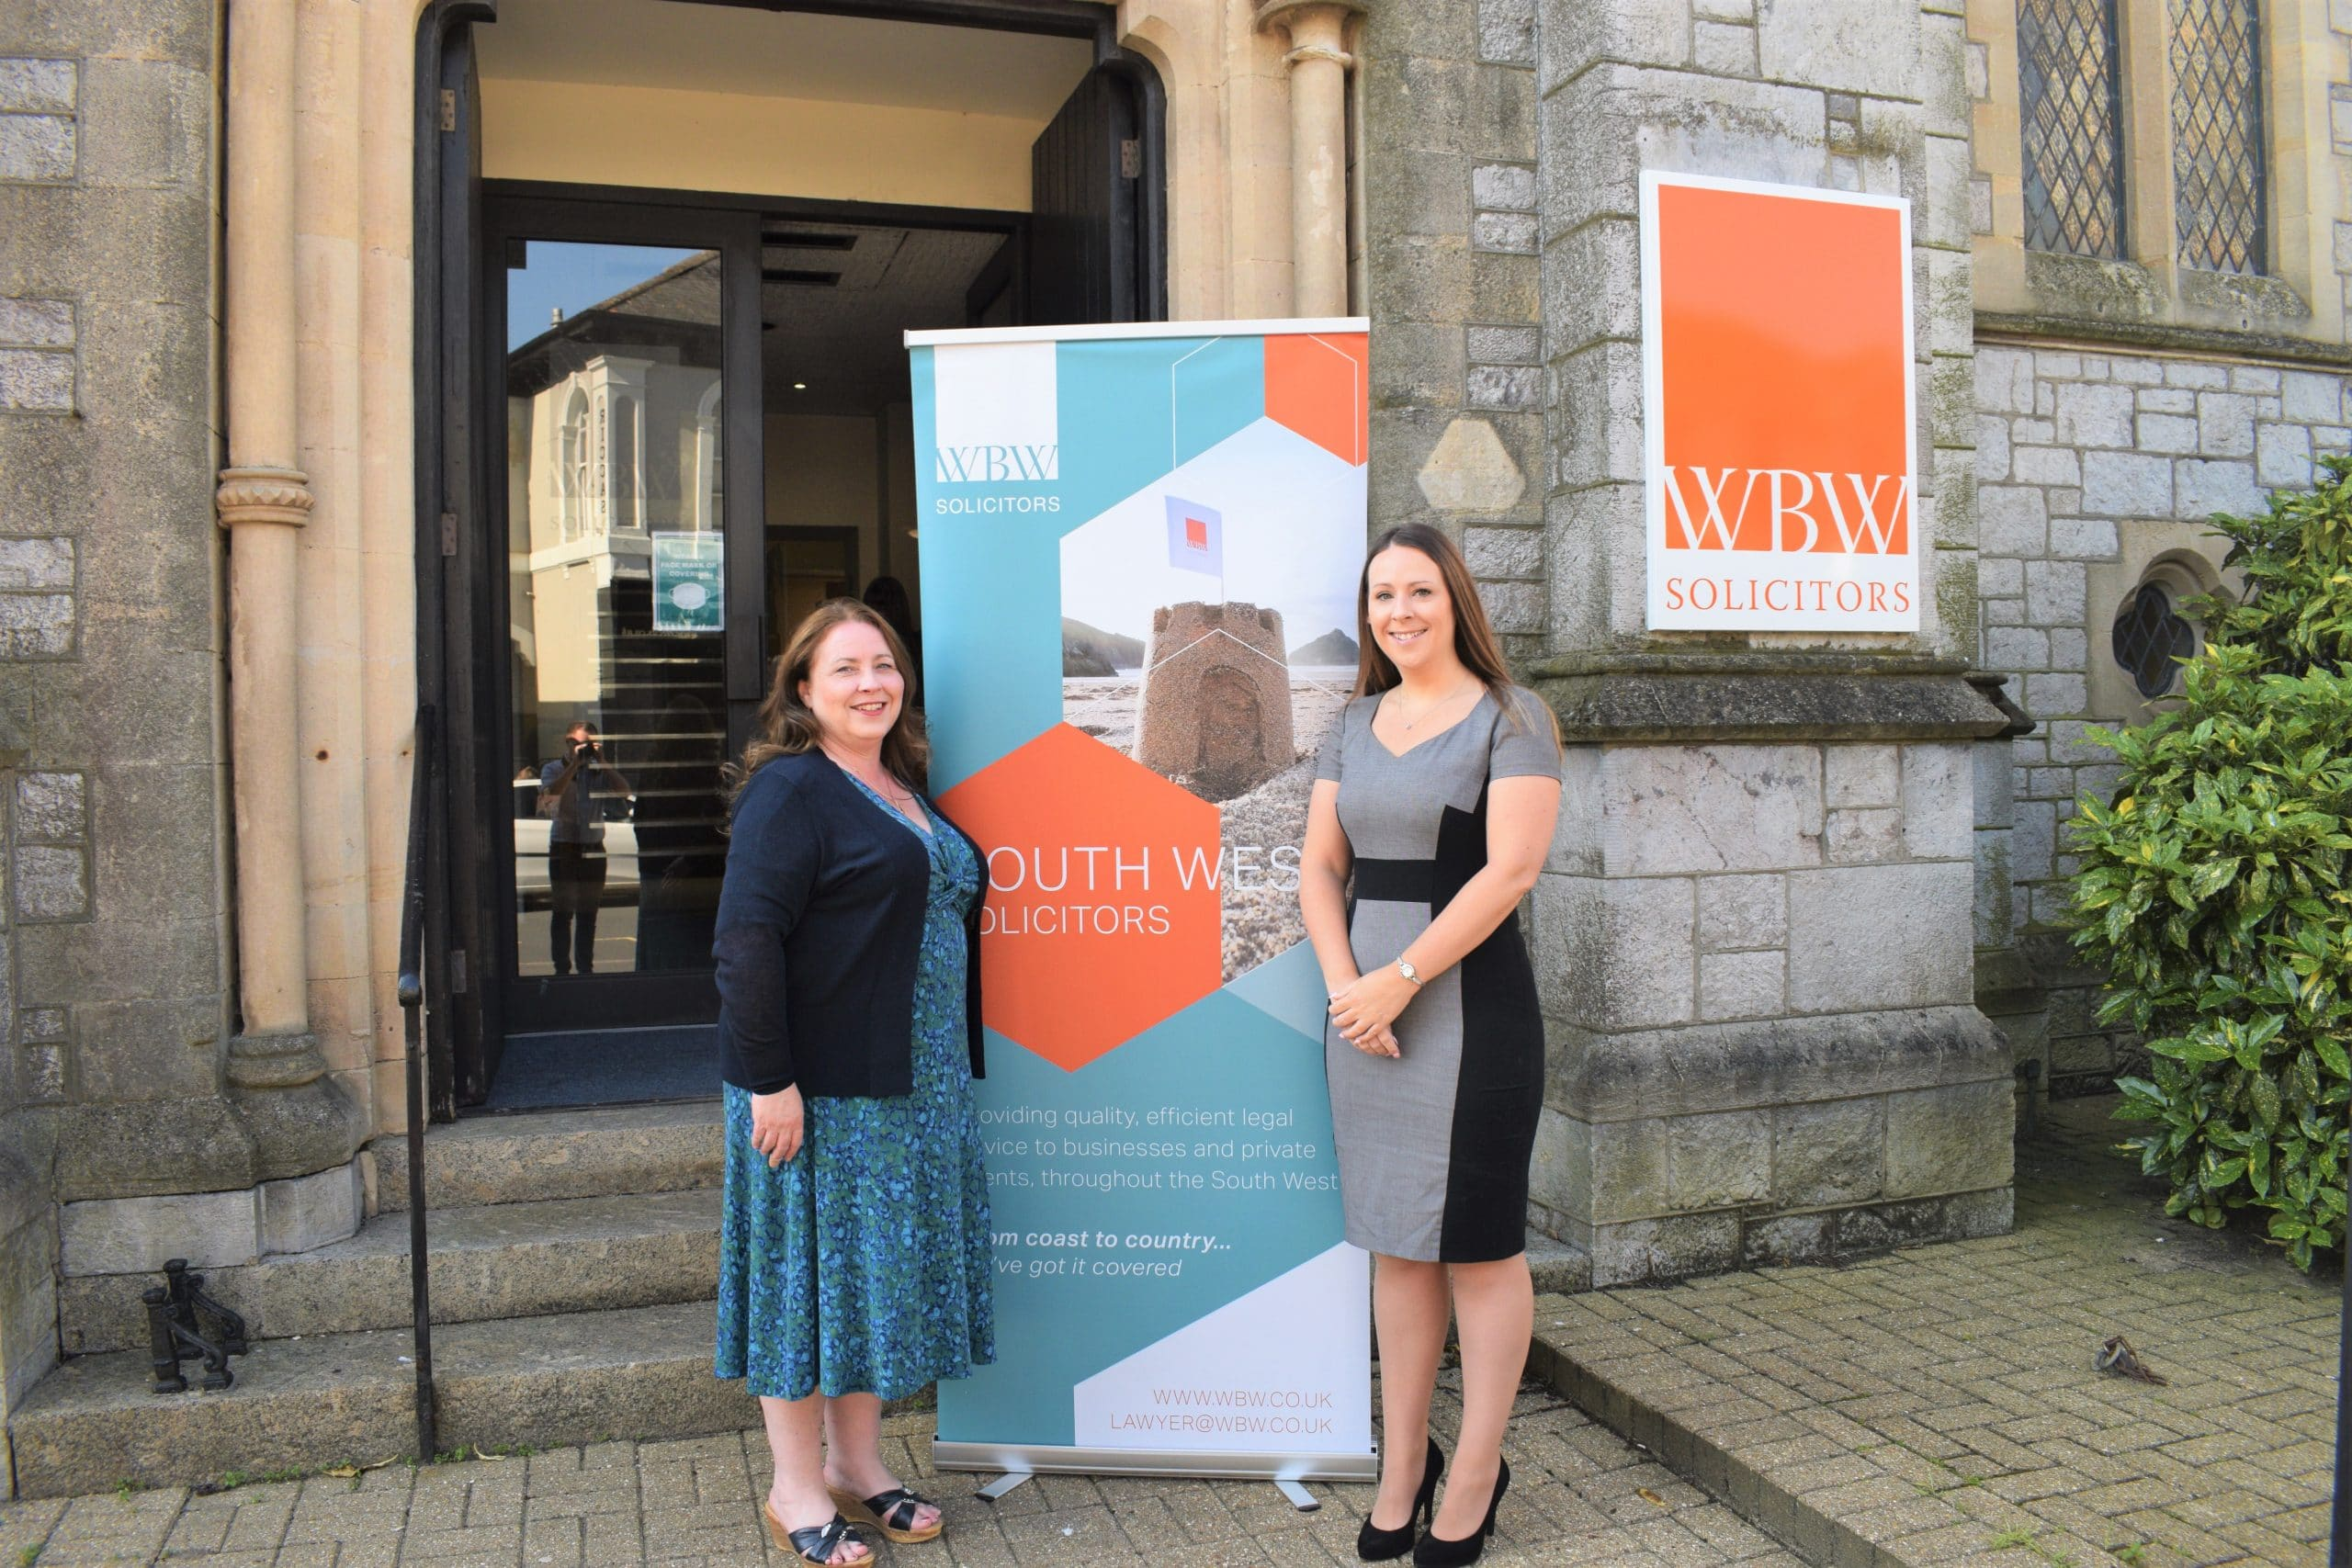 Laura Sellick-Tague Joins WBW Solicitors